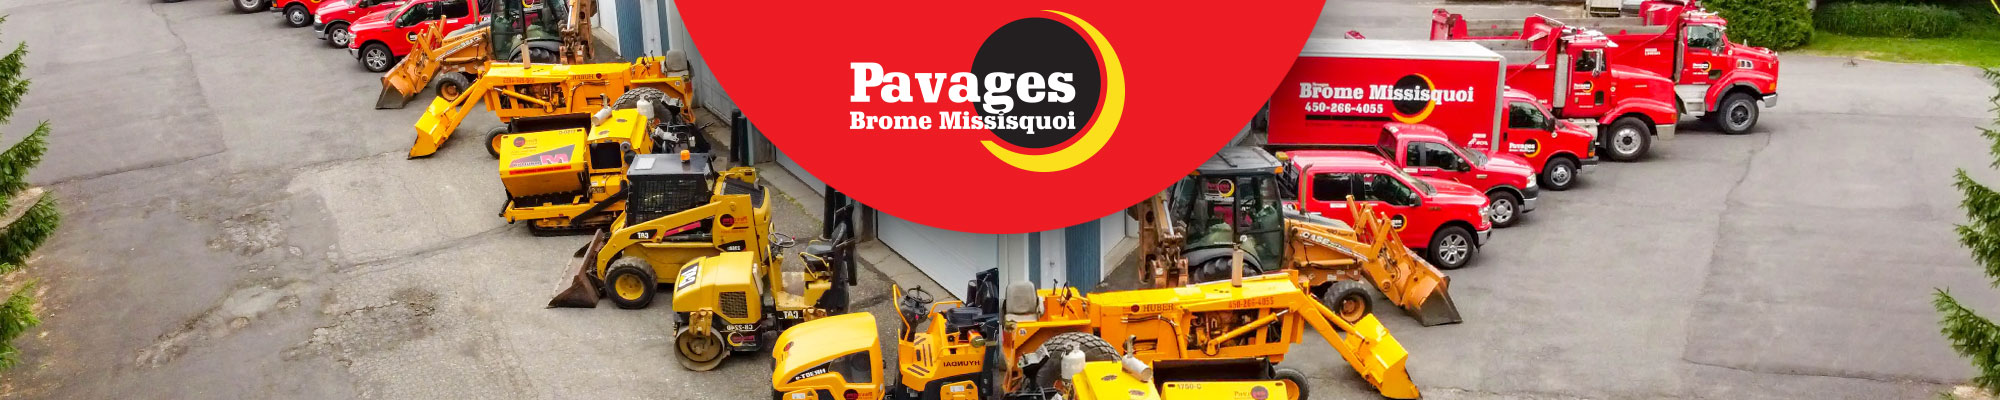 Pavages Brome-Missisquoi Services